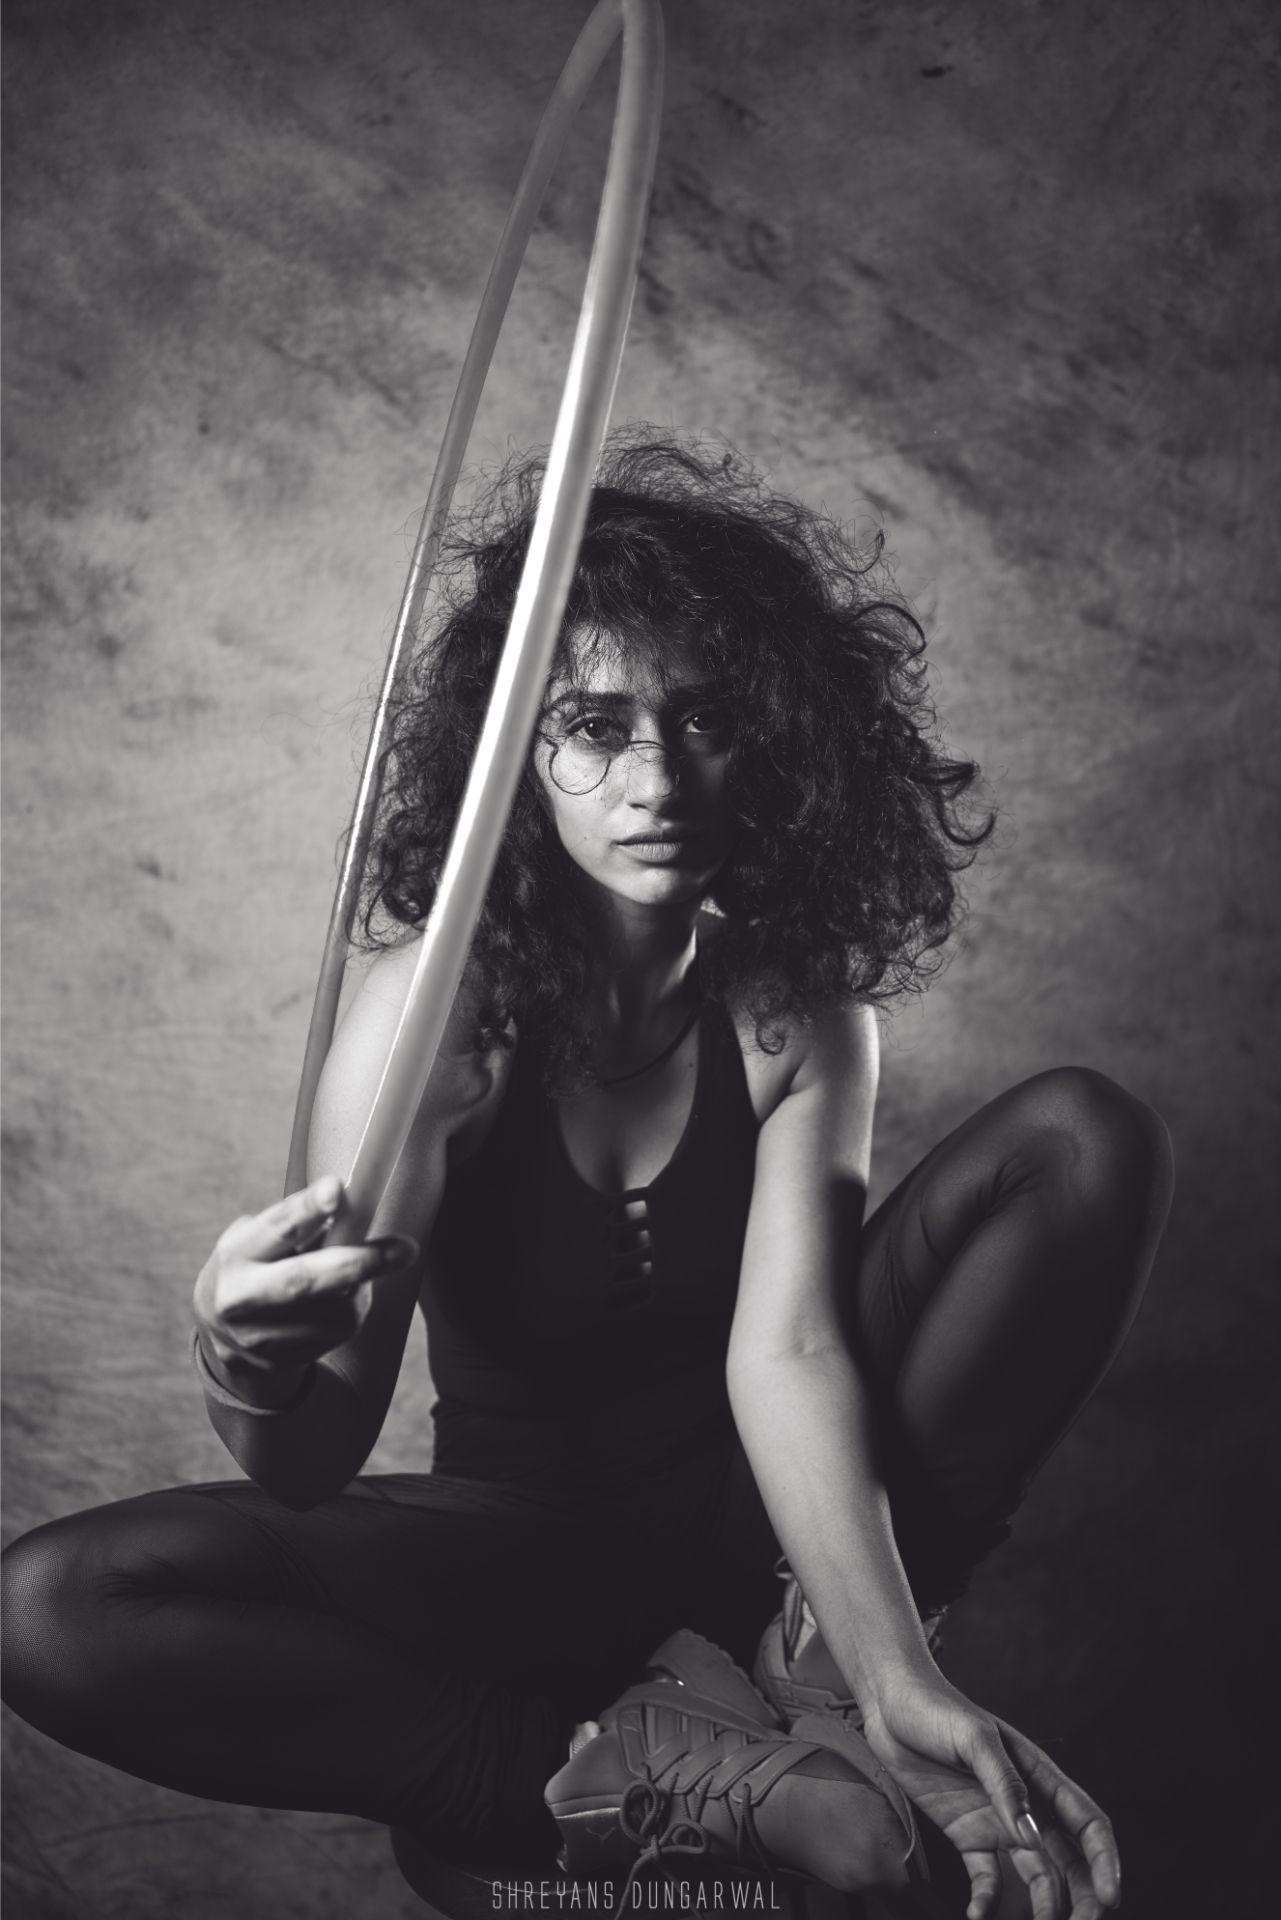 Posing with a hula hoop sitting on a chair staring into the lens. Black and white image.